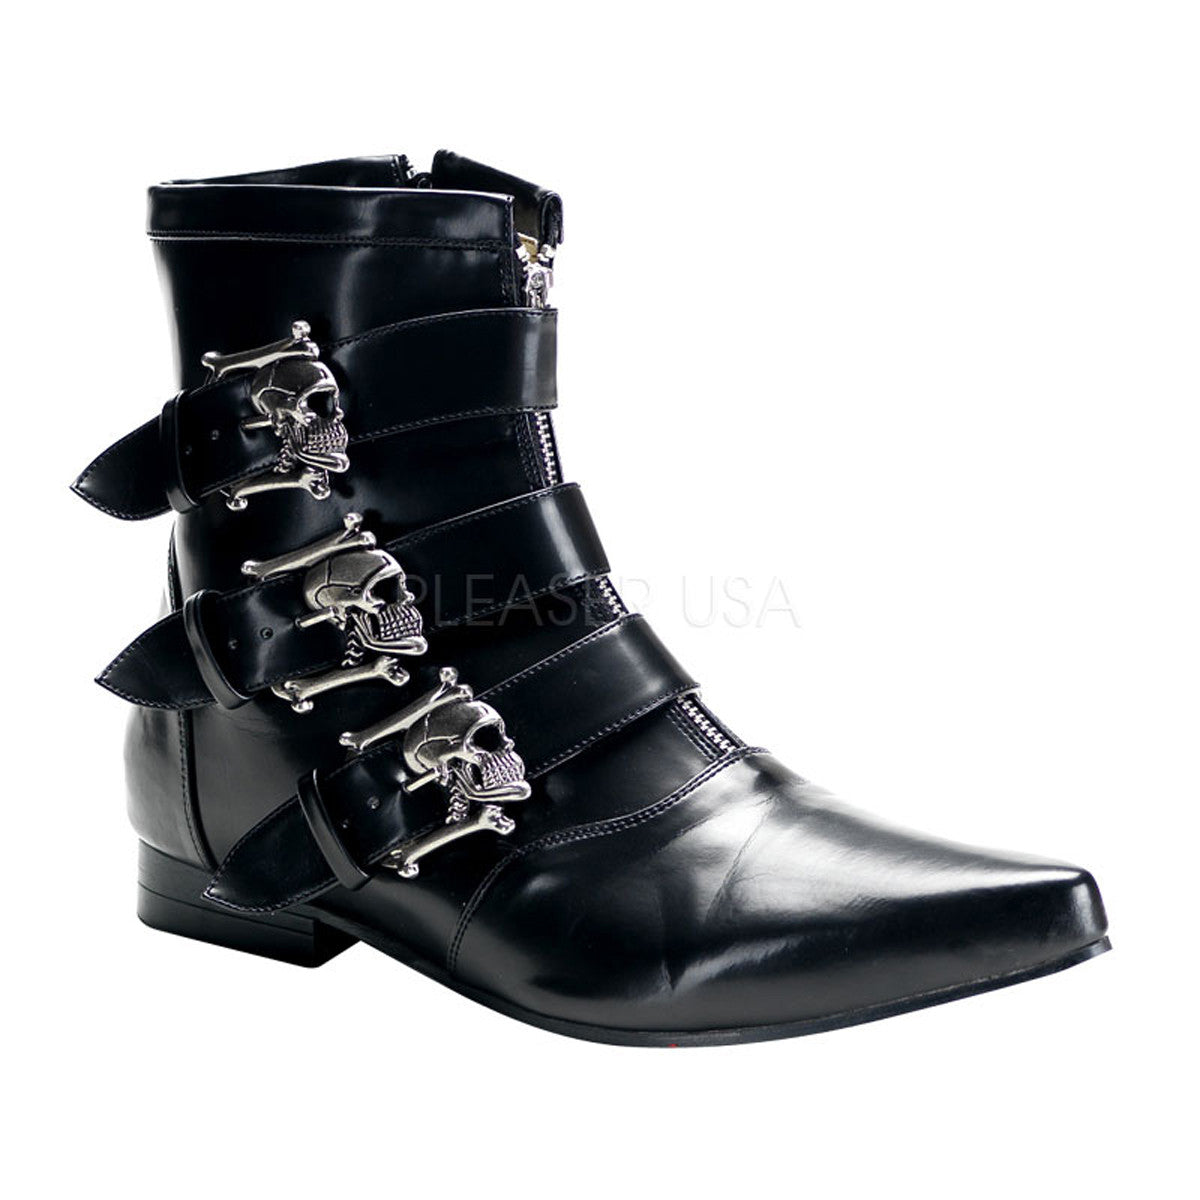 Demonia,DEMONIA BROGUE-06 Men's Black Nappa Pu Vegan Boots - Shoecup.com